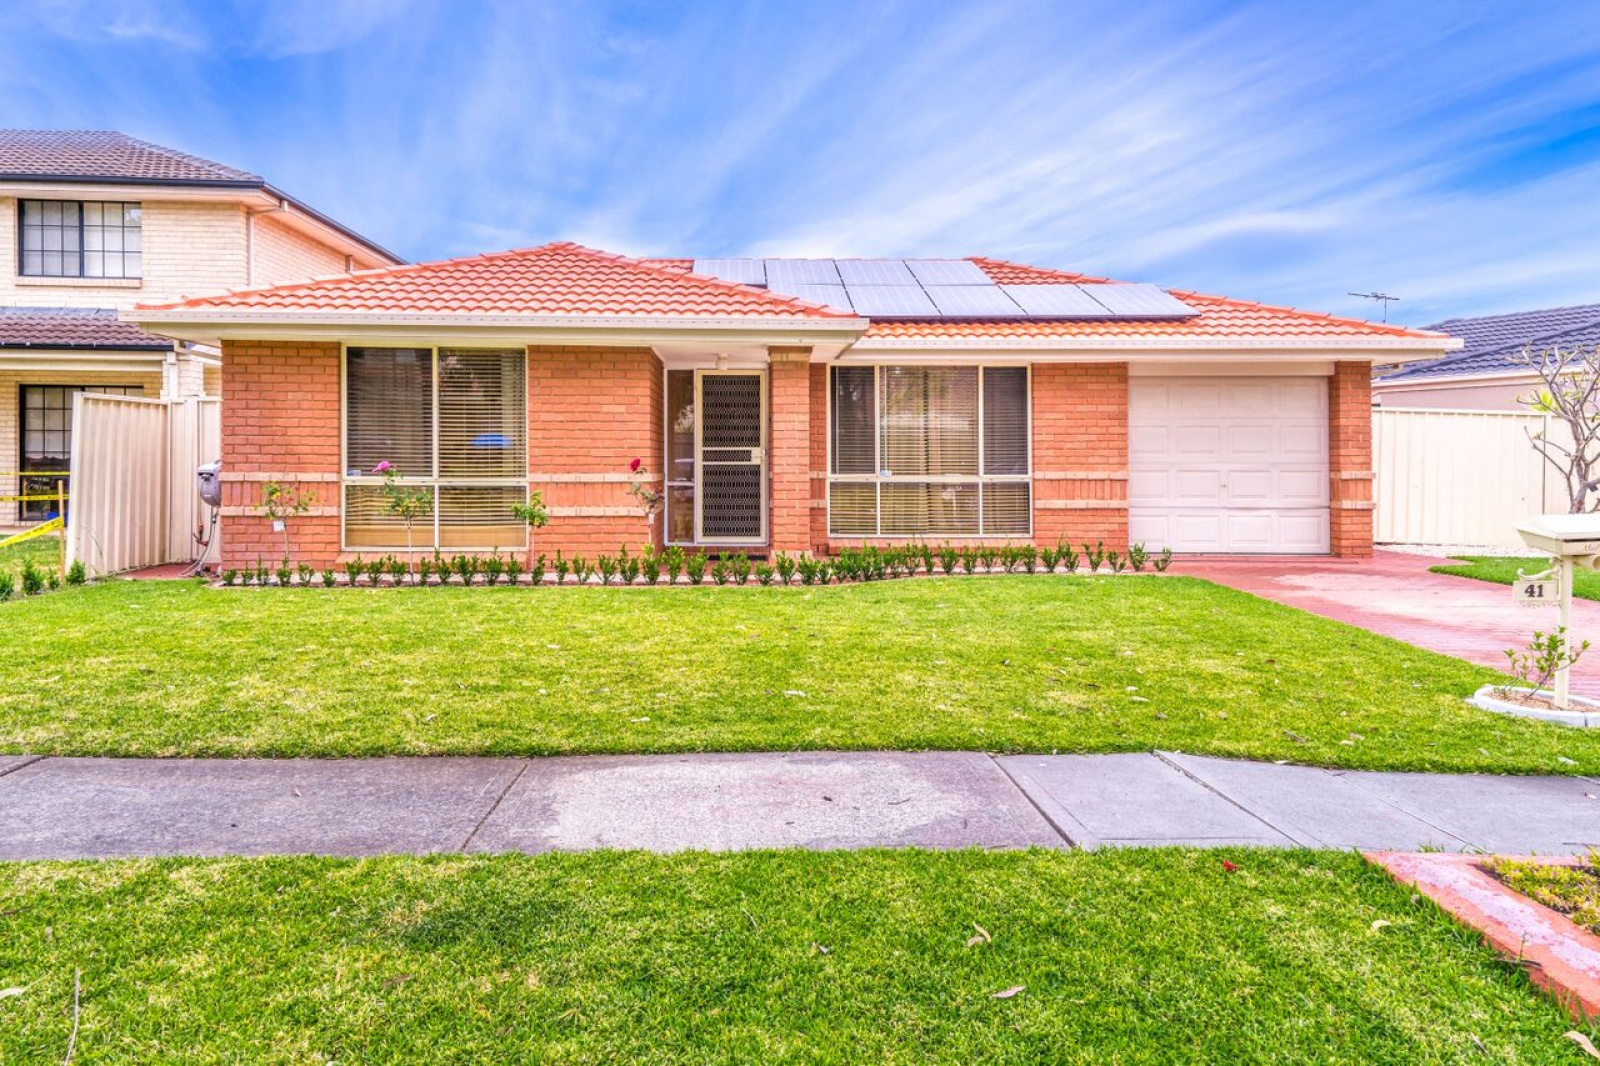 41 Kinnear Street,Harrington Park,NSW,4 Bedrooms Bedrooms,2 BathroomsBathrooms,House,Kinnear Street,1476